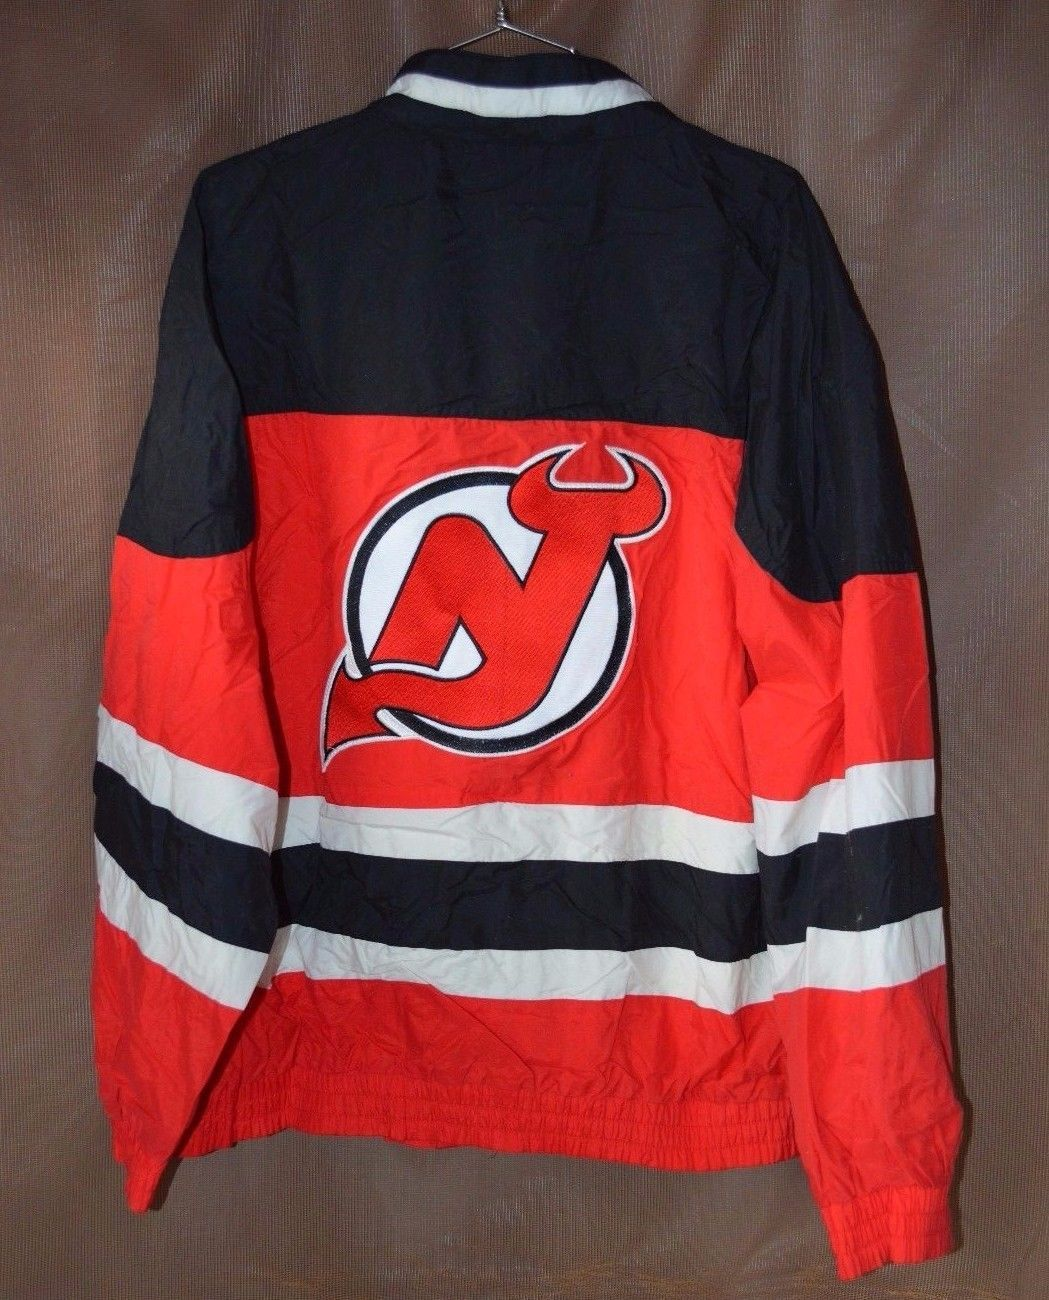 9666c5a2f Rare Vintage 90s Apex One NHL New Jersey Devils Hockey Jacket Mens M Starter  please retweet